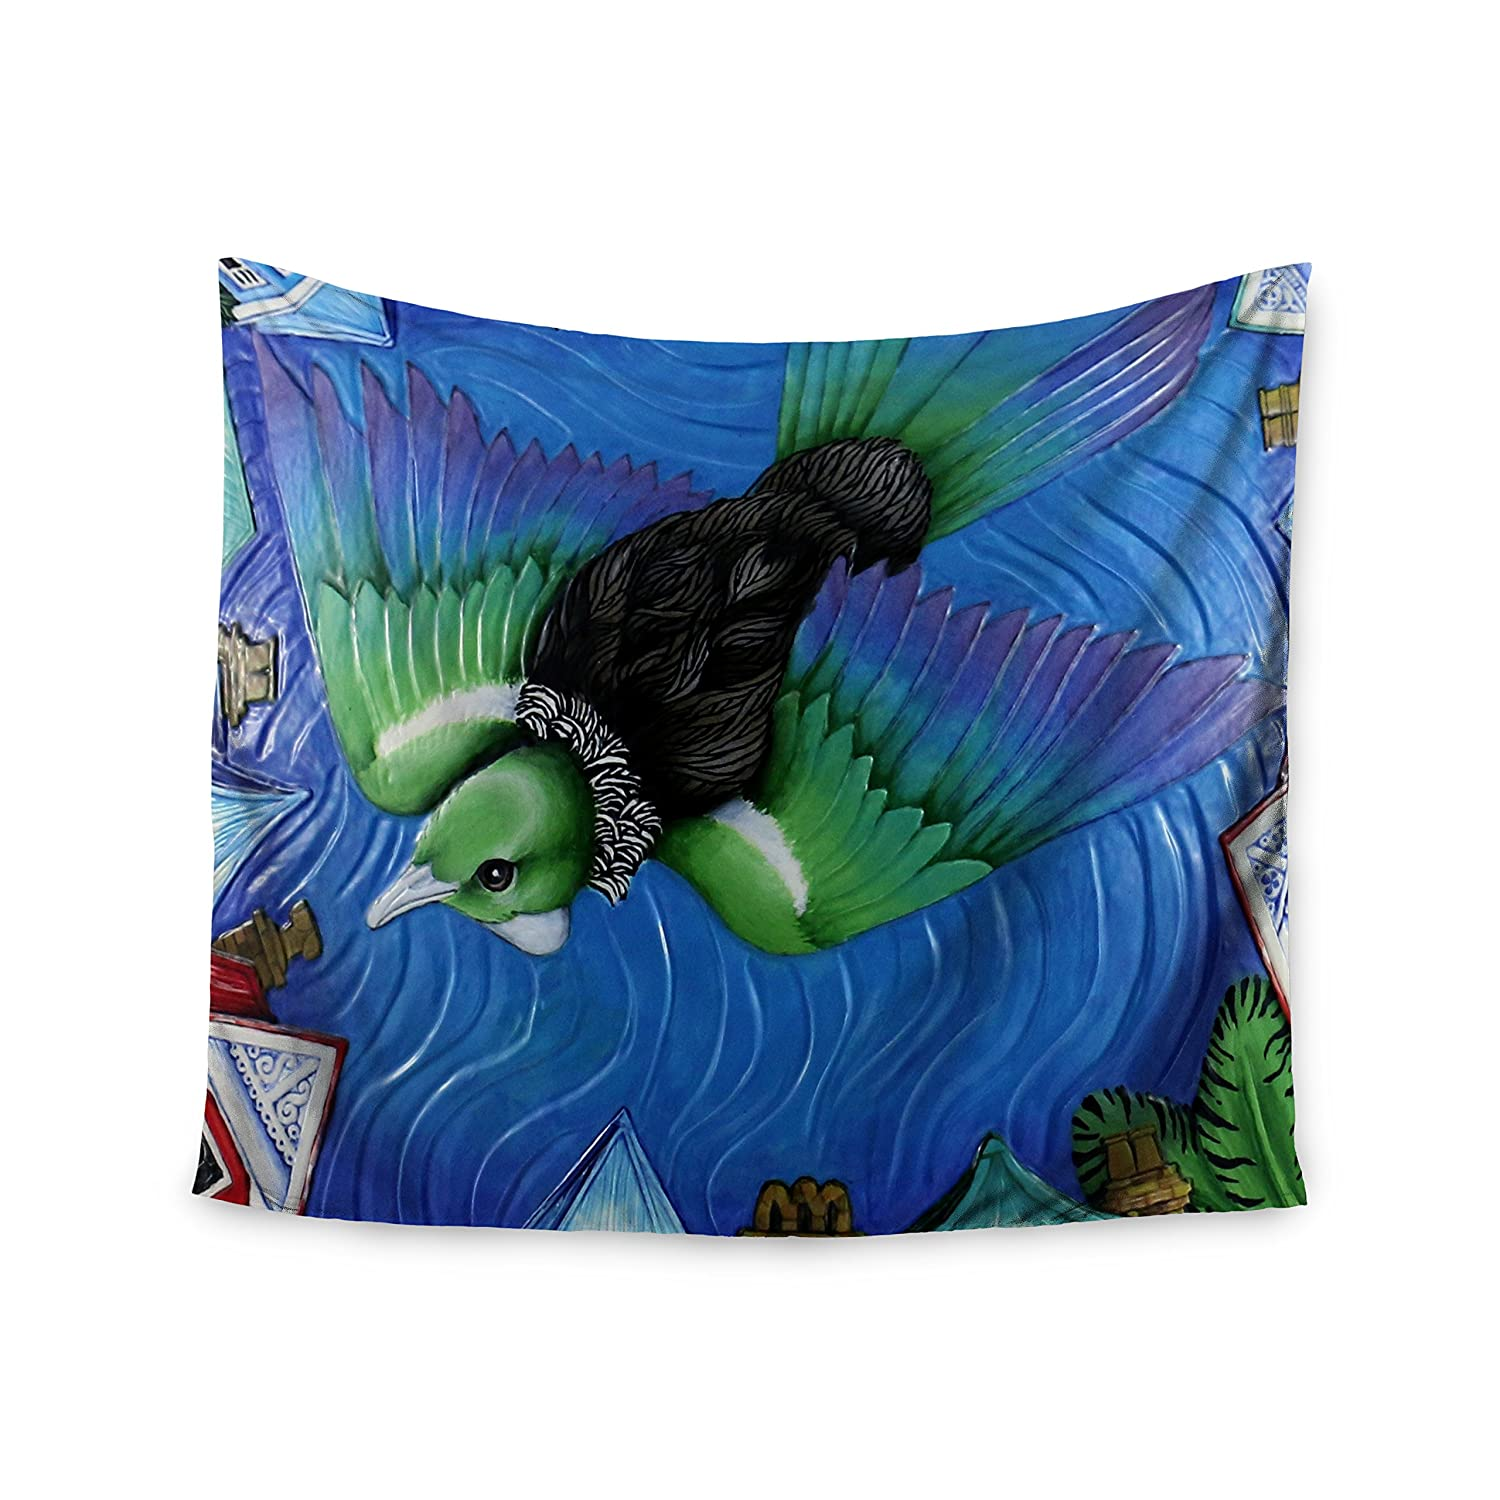 68 x 80 KESS InHouse Vinny Thompson Tui Flying In Pacific Skies Blue Green Wall Tapestry